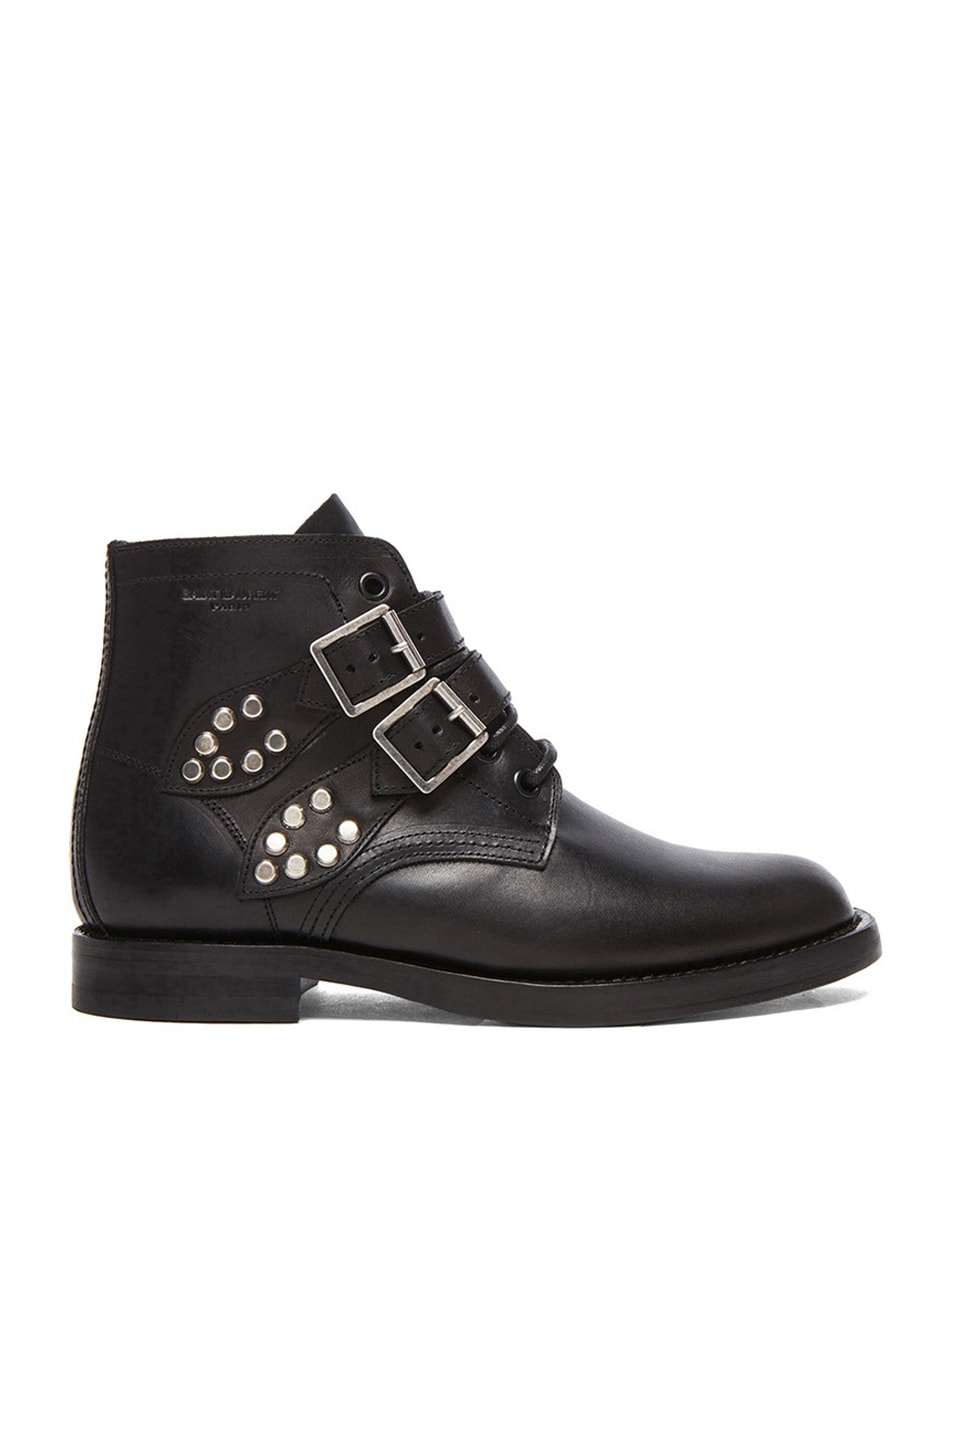 Image 1 of Saint Laurent Leather Buckled Ankle Boots in Black